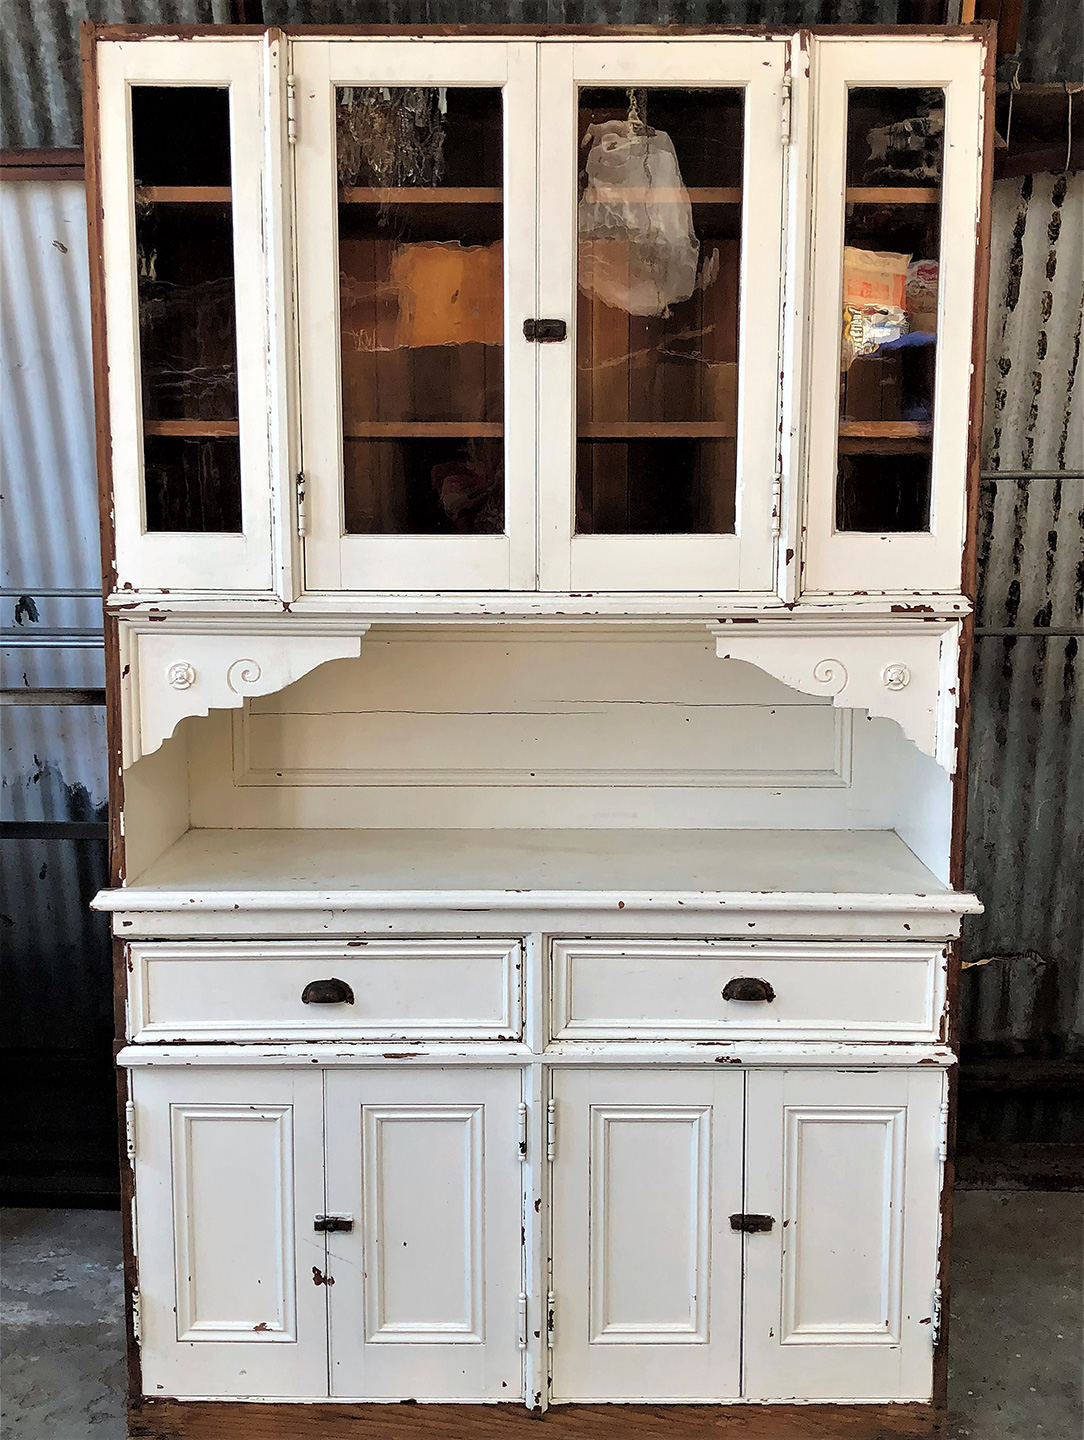 Victorian Built-In Cabinet - circa 1890 [12 32 23.10-0001 ...